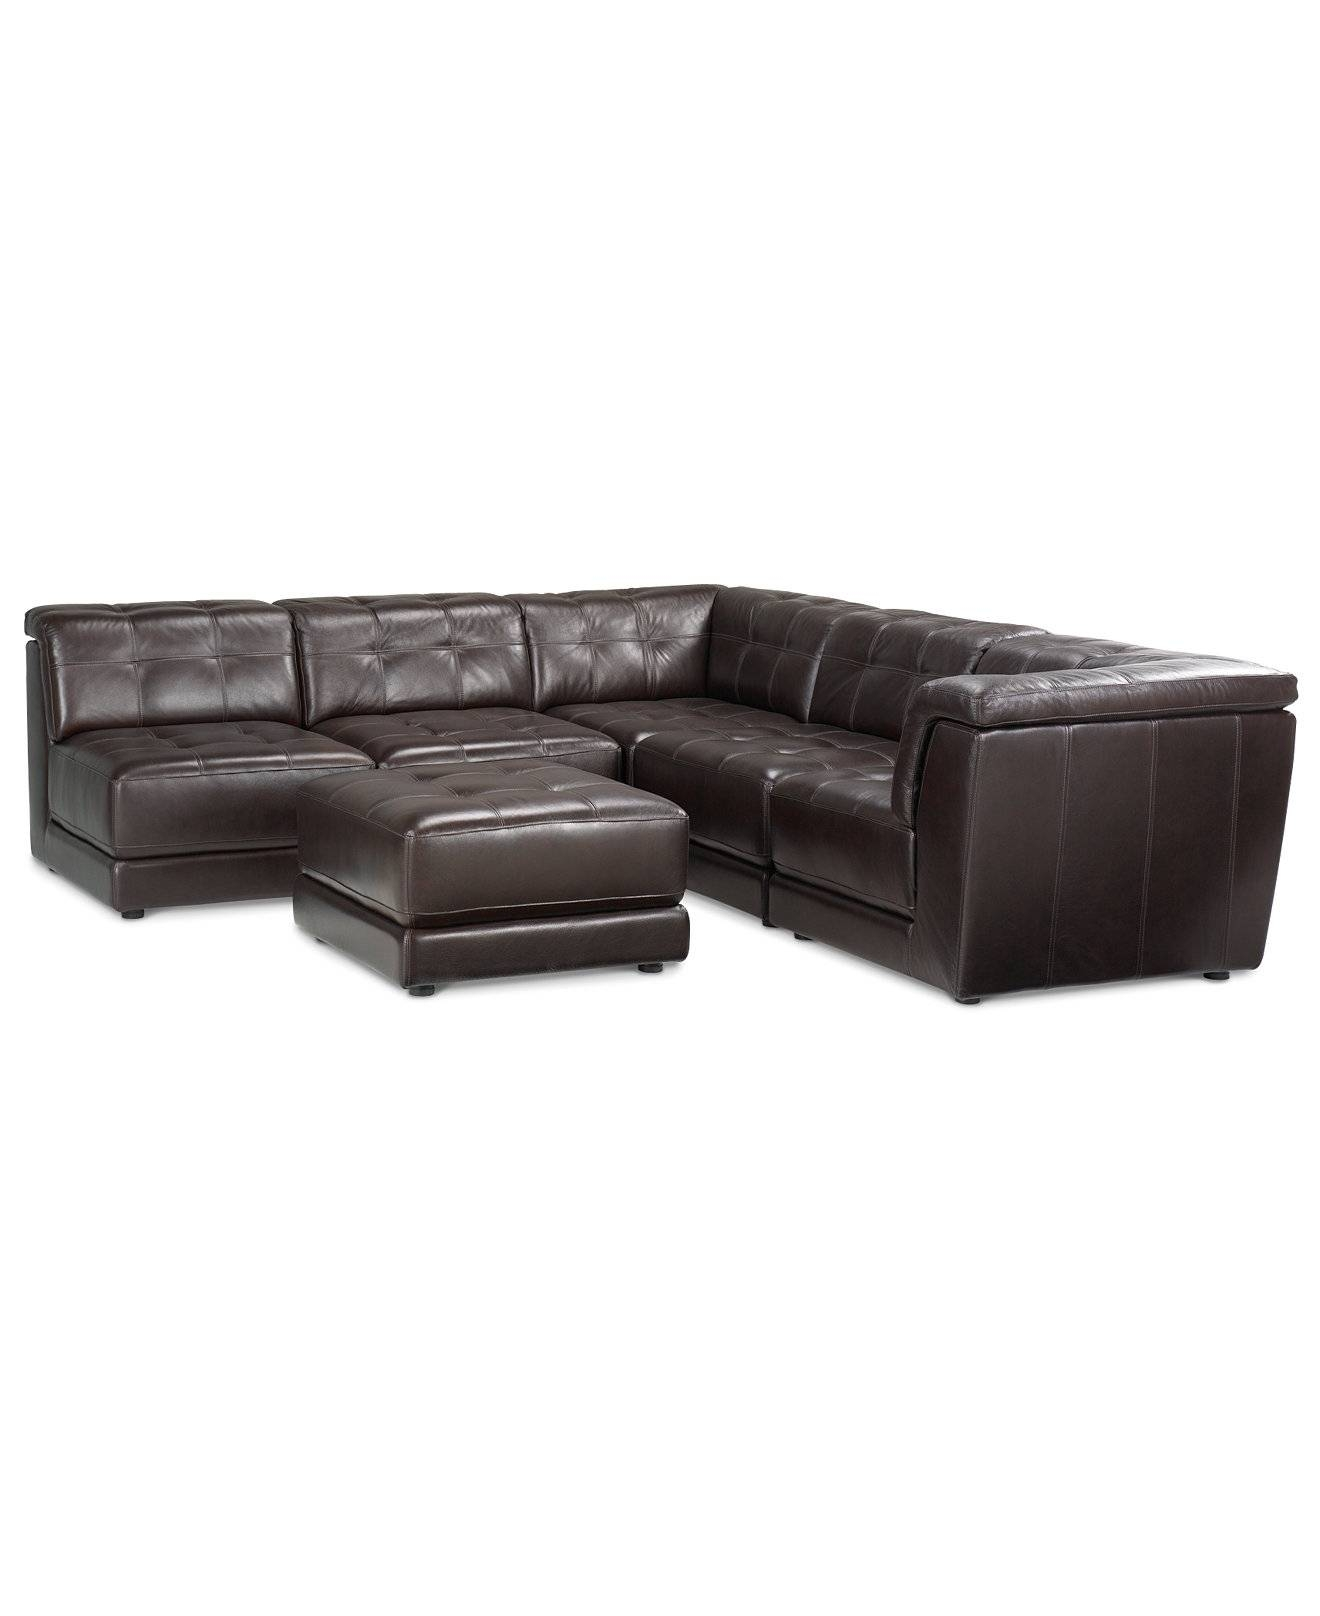 Interesting 6 Piece Modular Sectional Sofa 73 For American Made with regard to American Made Sectional Sofas (Image 14 of 30)